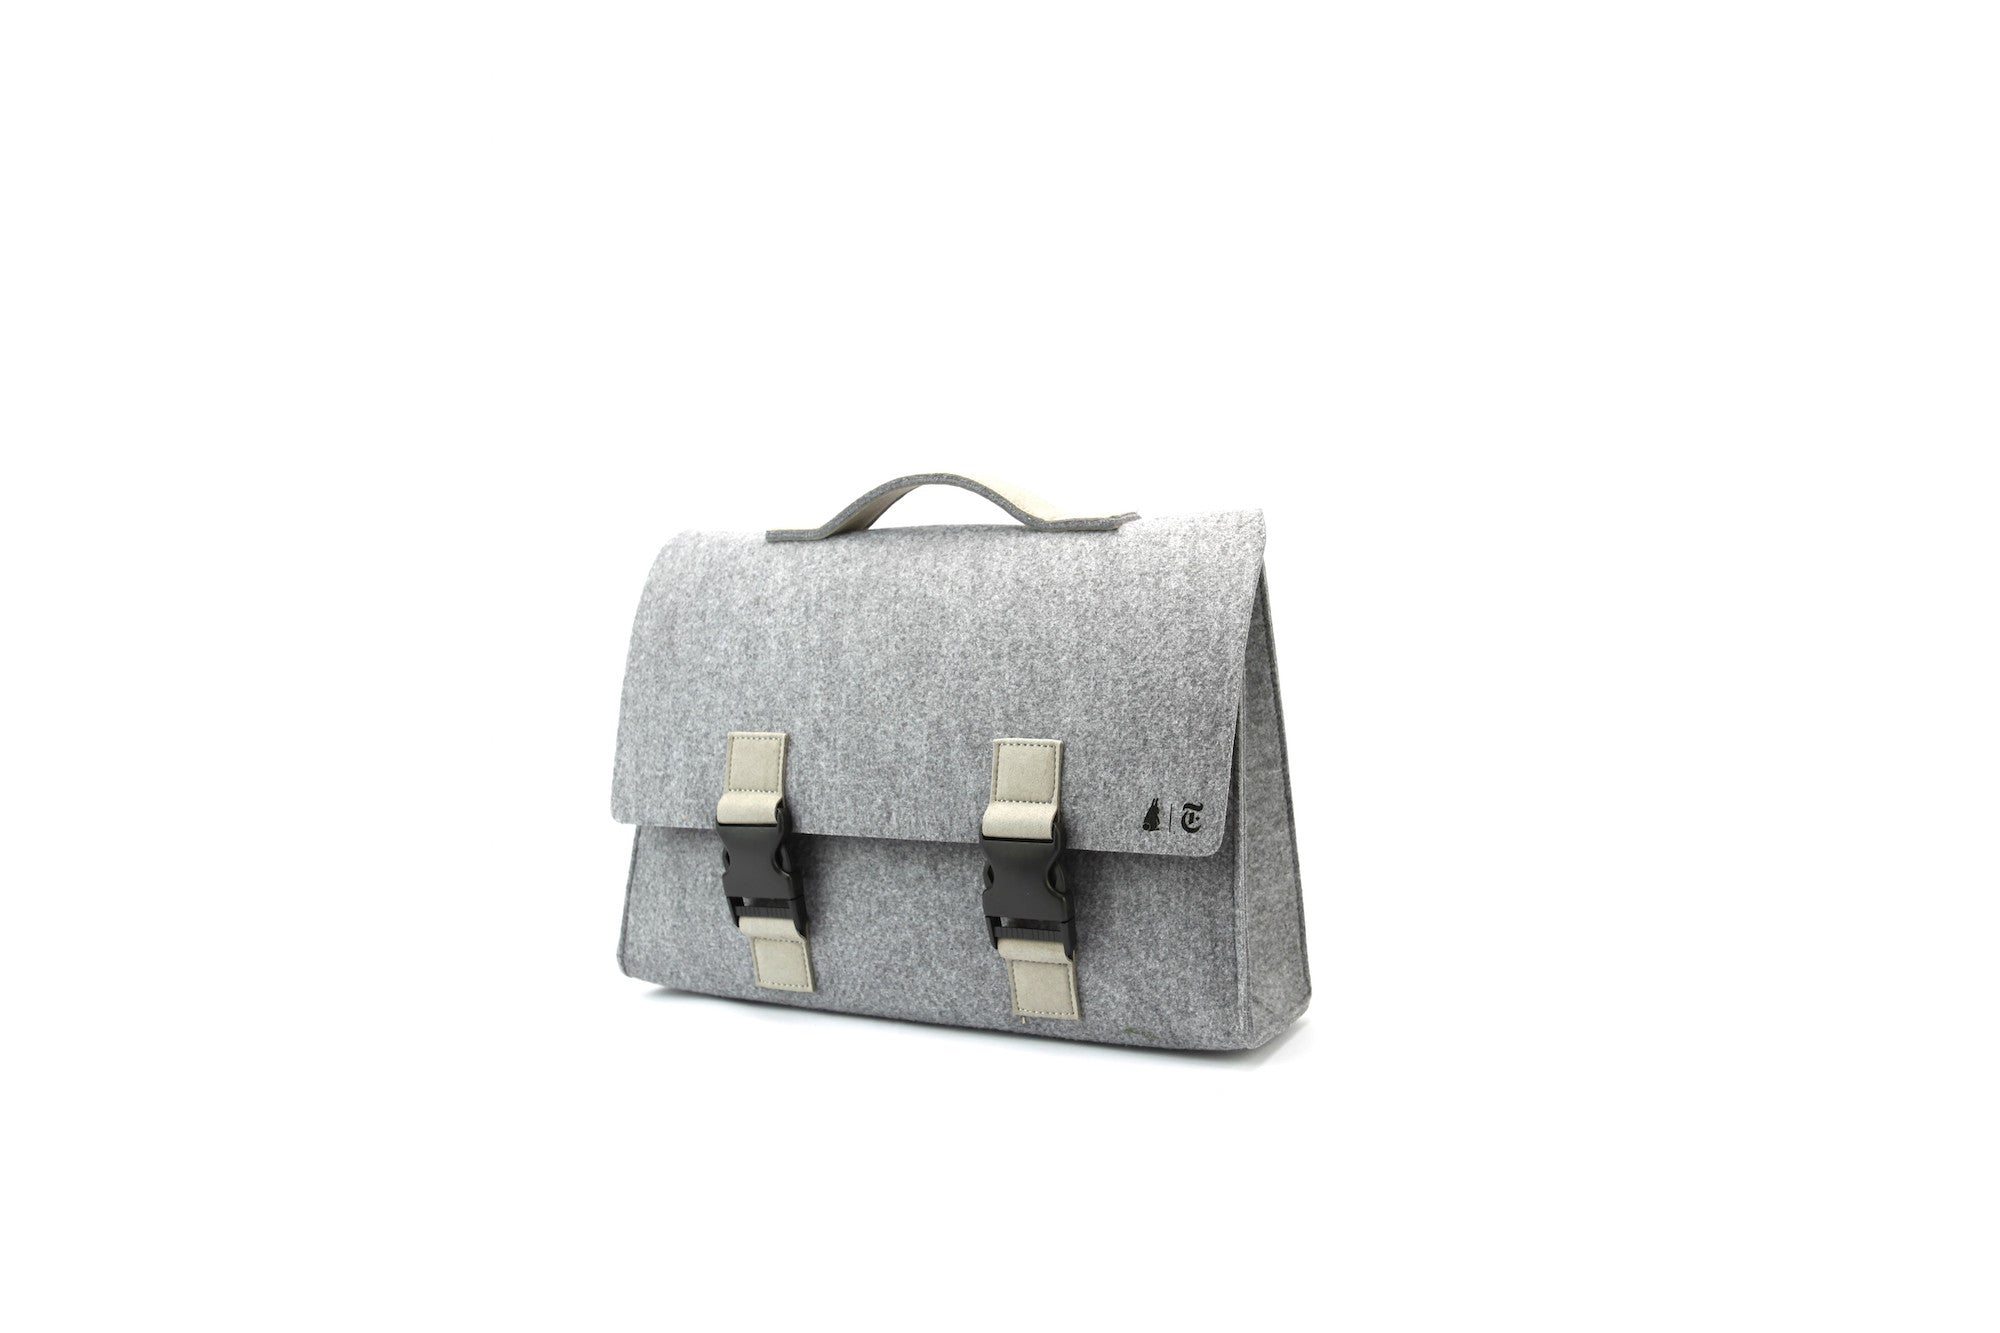 M.R.K.T. for NYT - Greenwich Briefcase - M.R.K.T. - 1